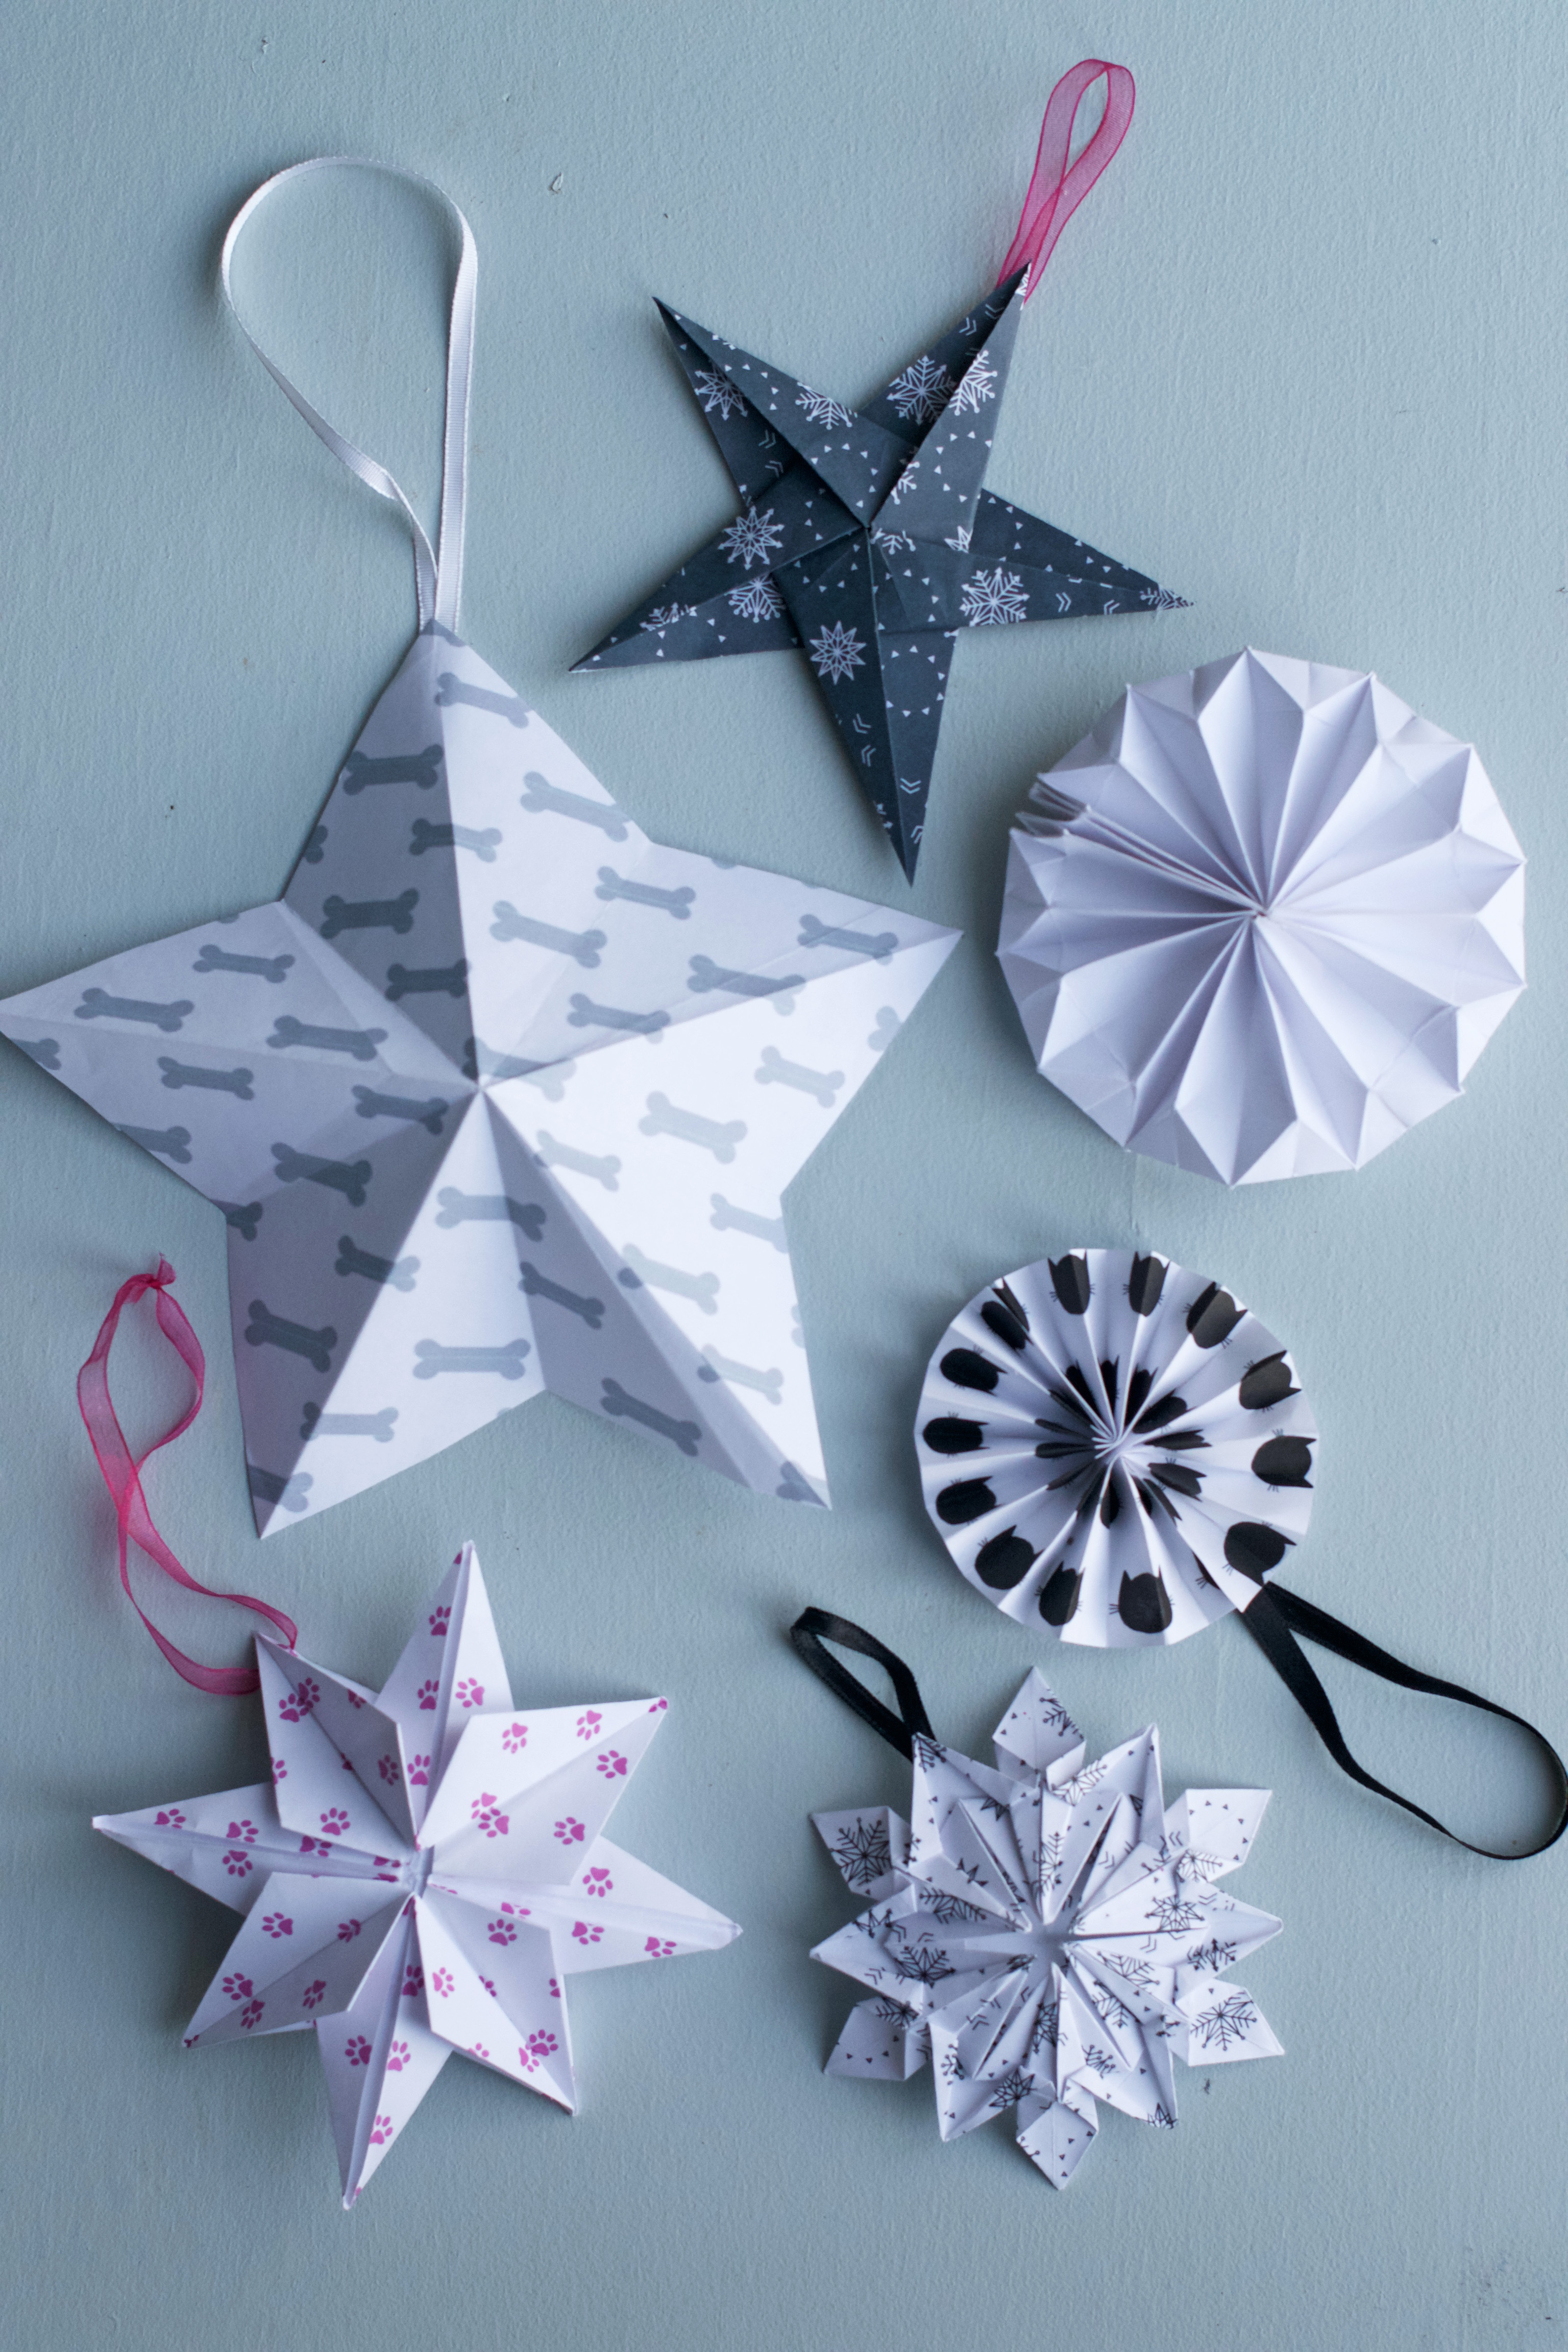 Diy star origami ornament origami star - Diy Origami Stars And Snowflakes Hungry Heart